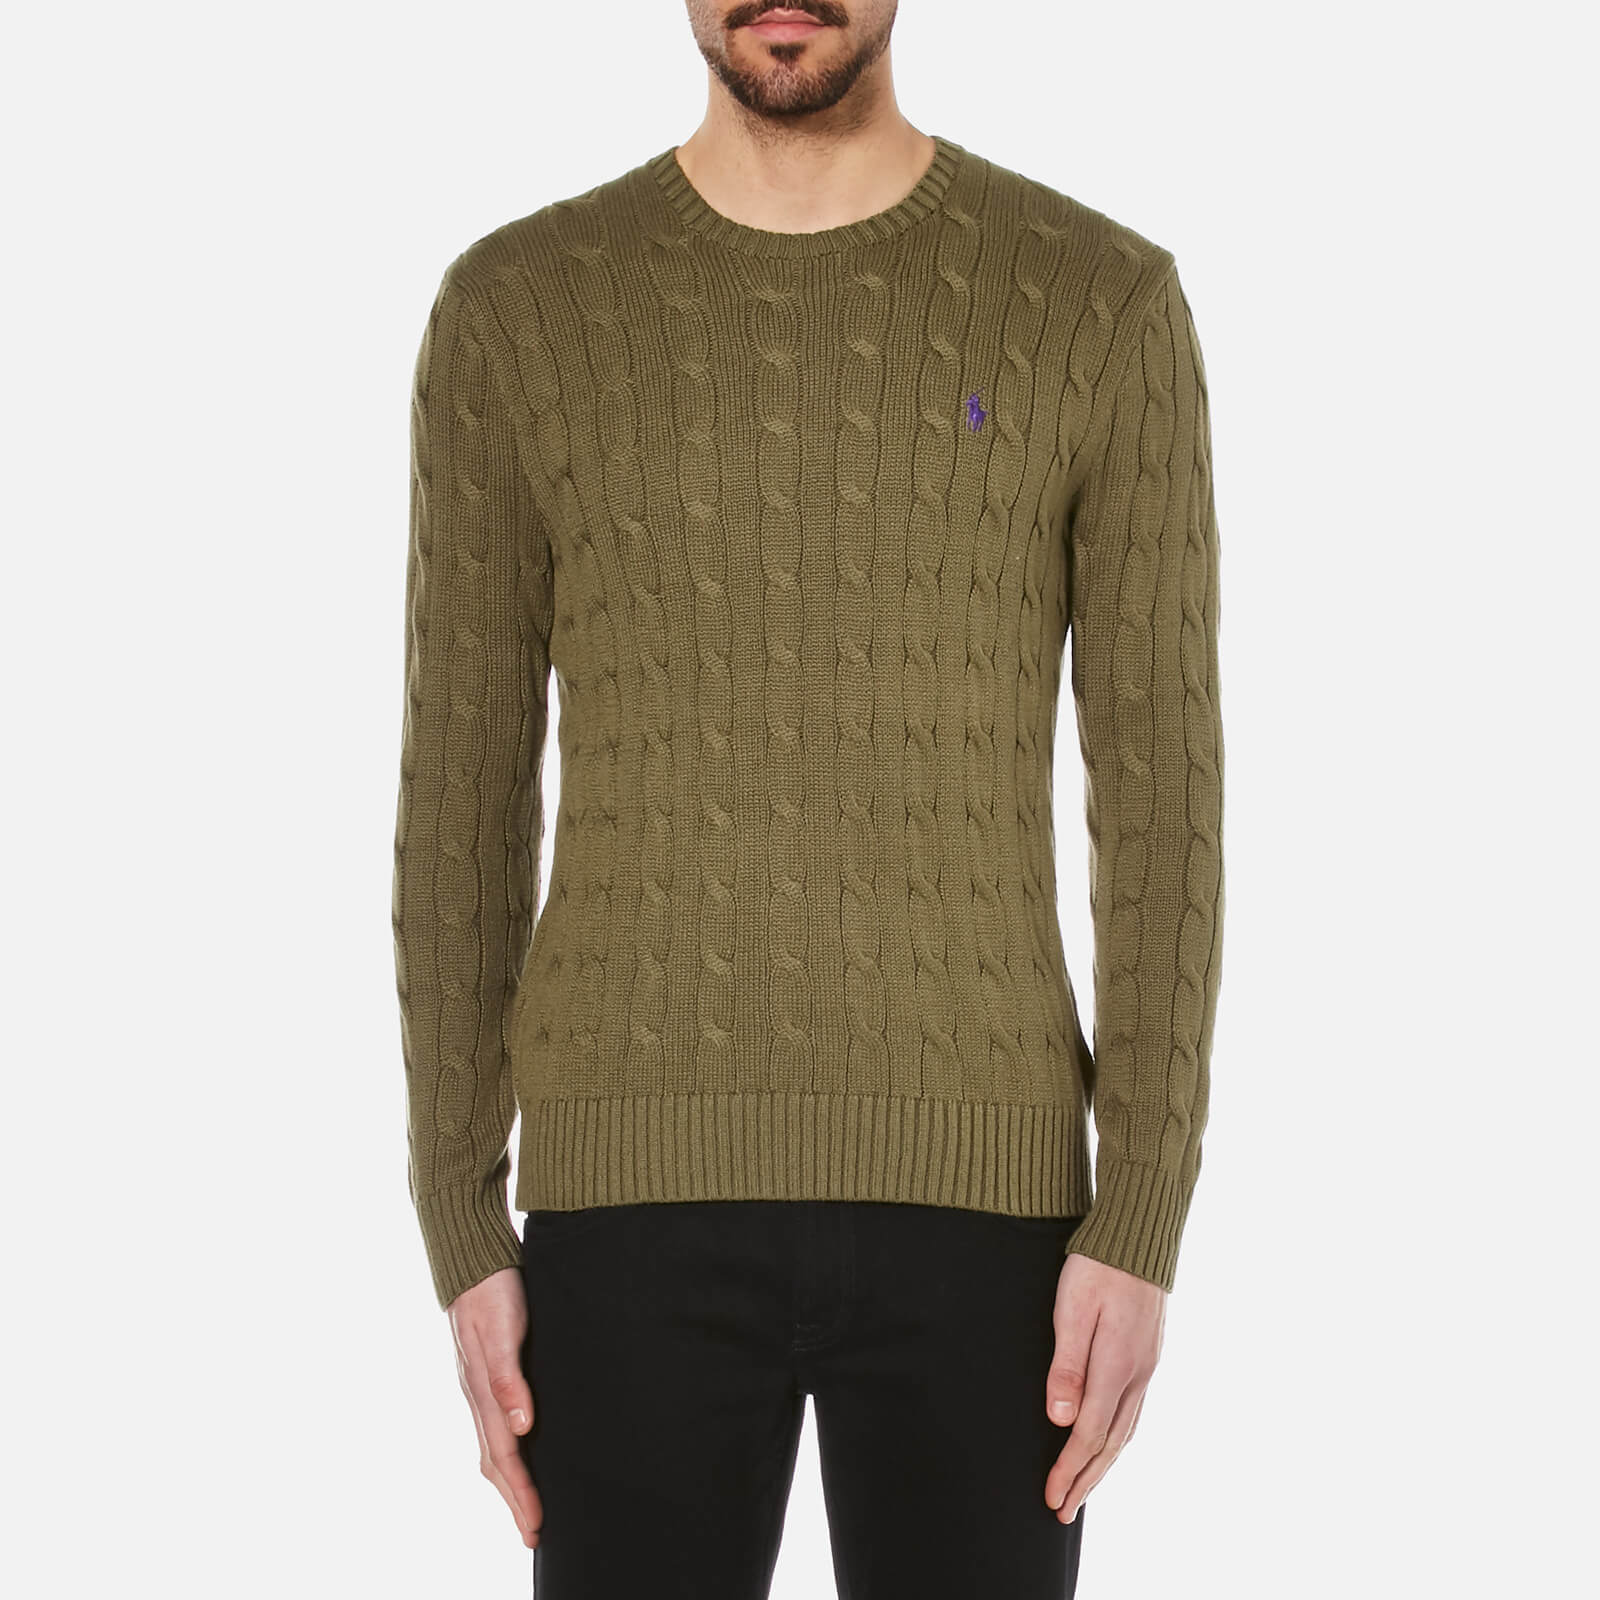 54c4515df5f5fc Polo Ralph Lauren Men s Crew Neck Cable Knitted Jumper - New Olive - Free  UK Delivery over £50